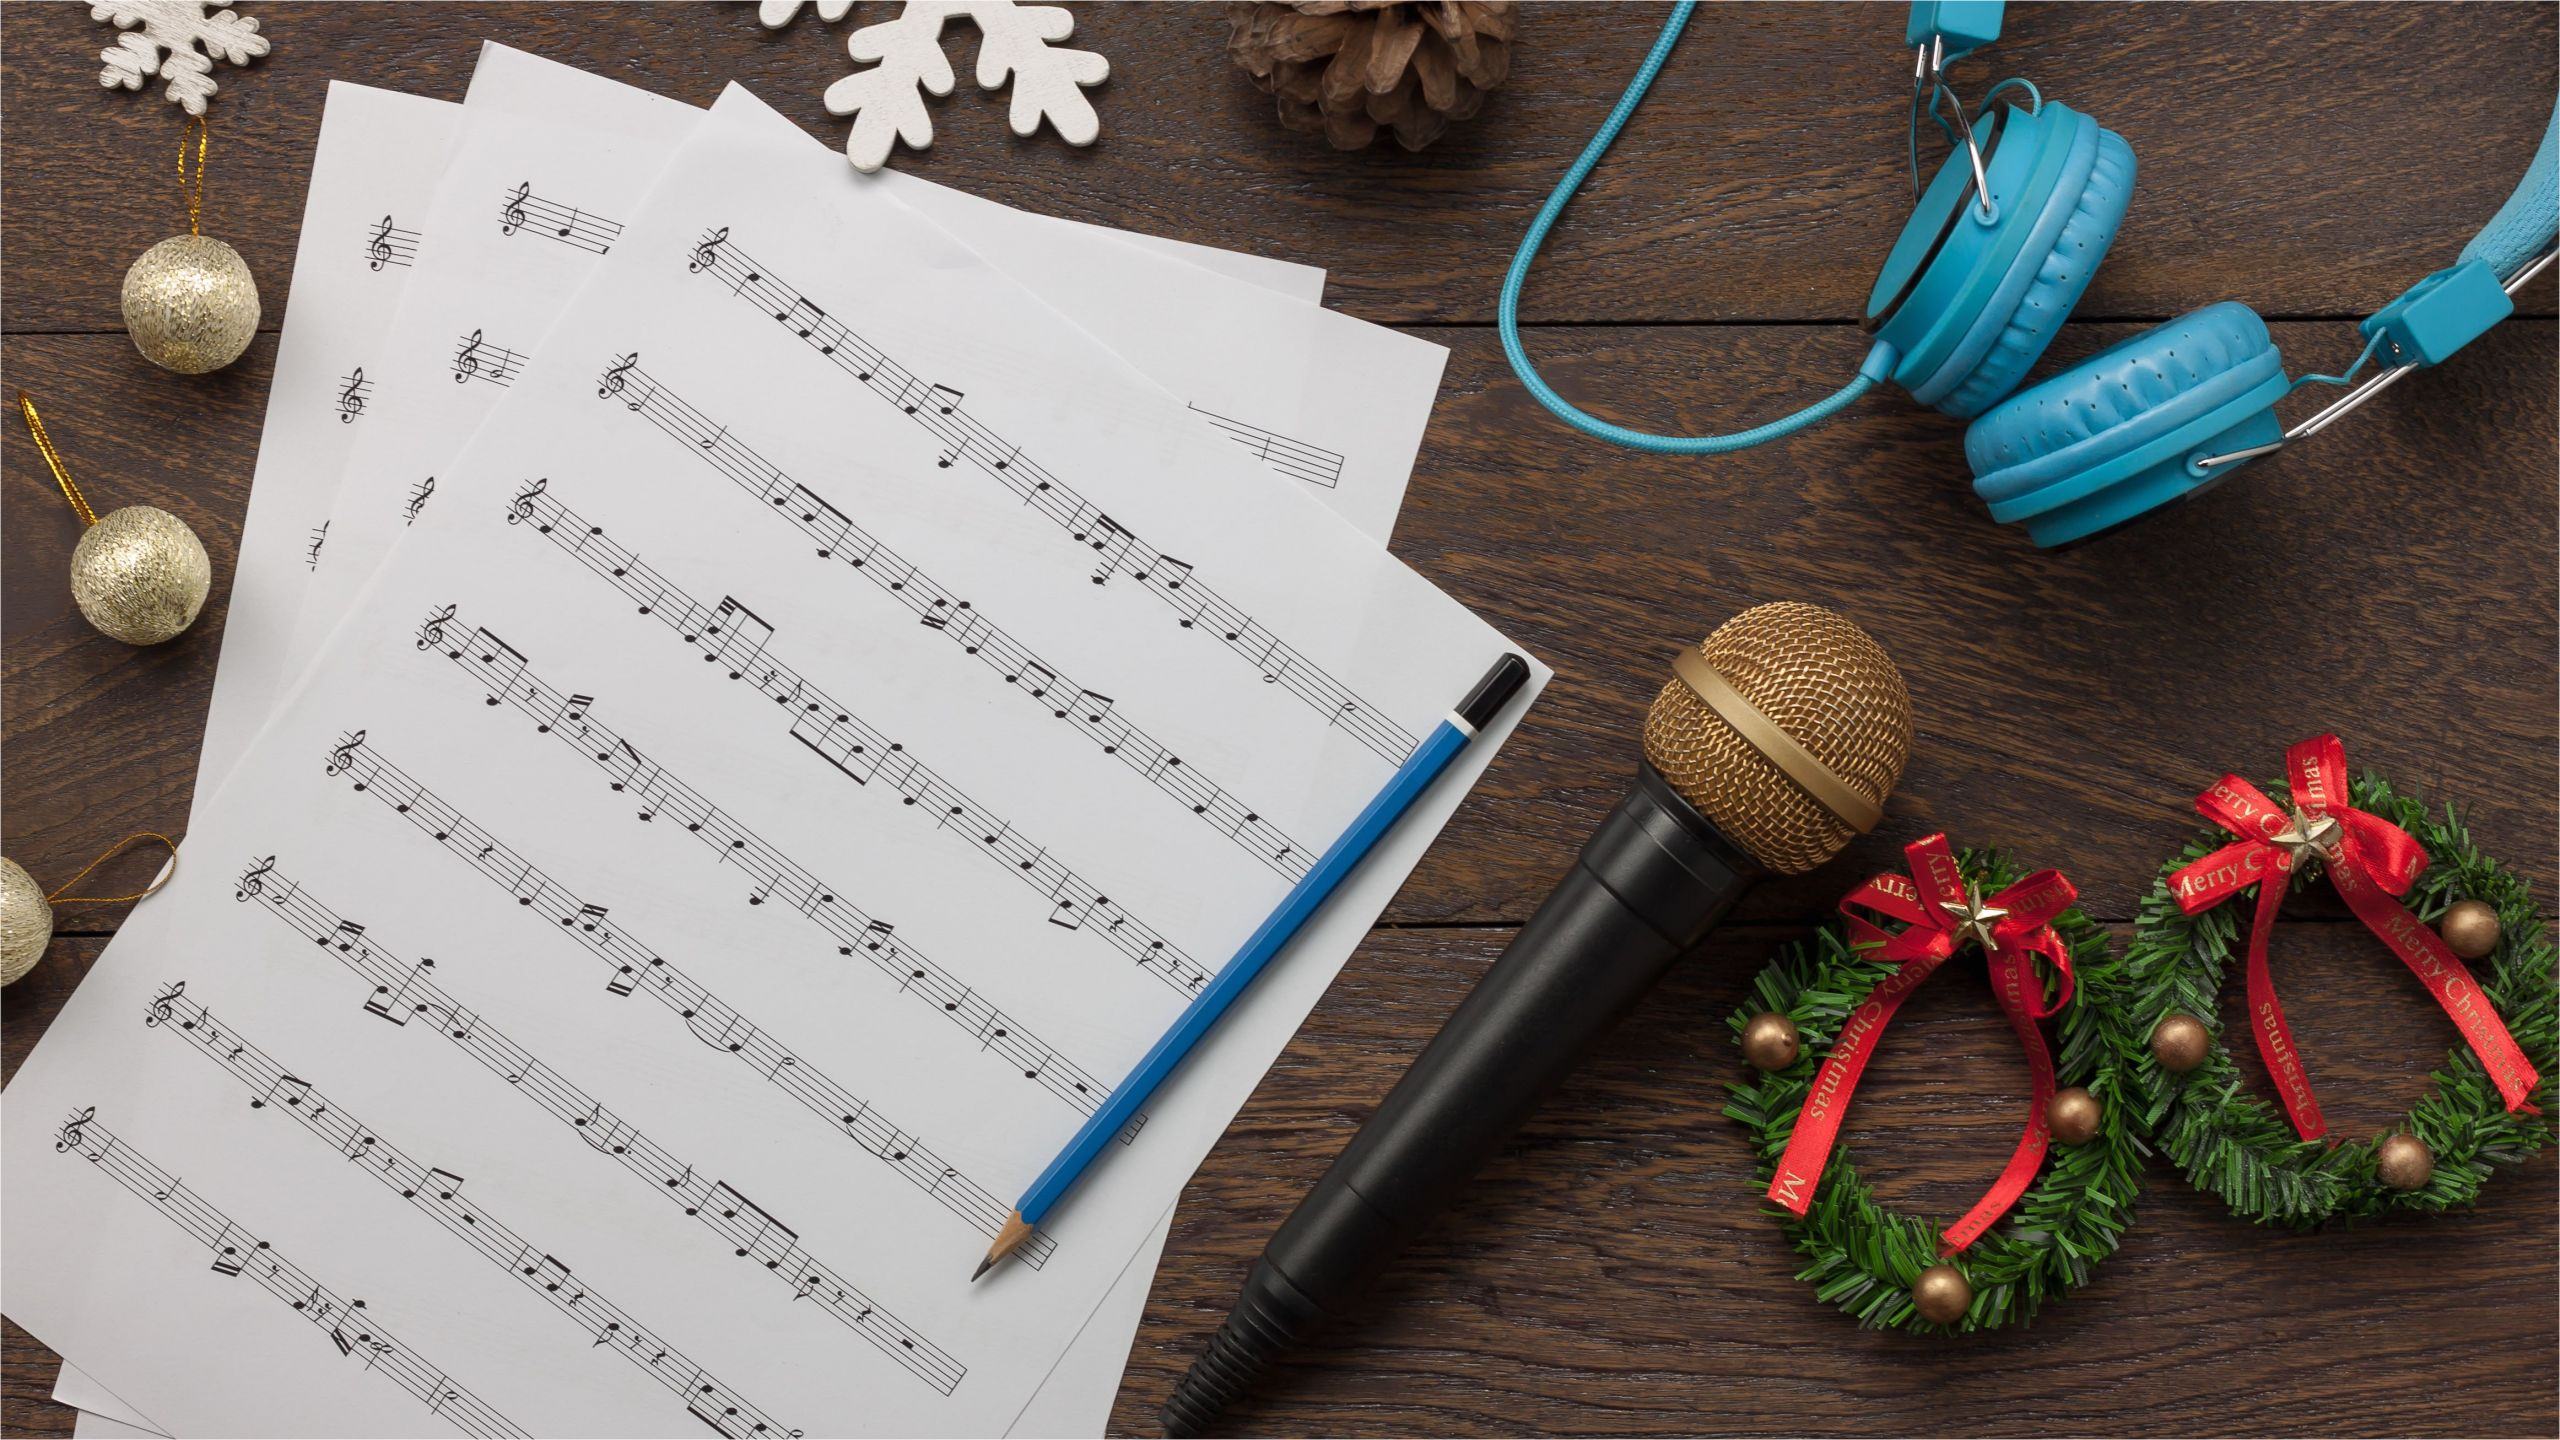 table top view of music sheet note and accessories merry christmas happy new year concept instrument musical with decoration festive on the modern rustic dark brown wooden at home office desk 865548576 0c8520ffa2904d06a2b2eb04edc379d2 jpg